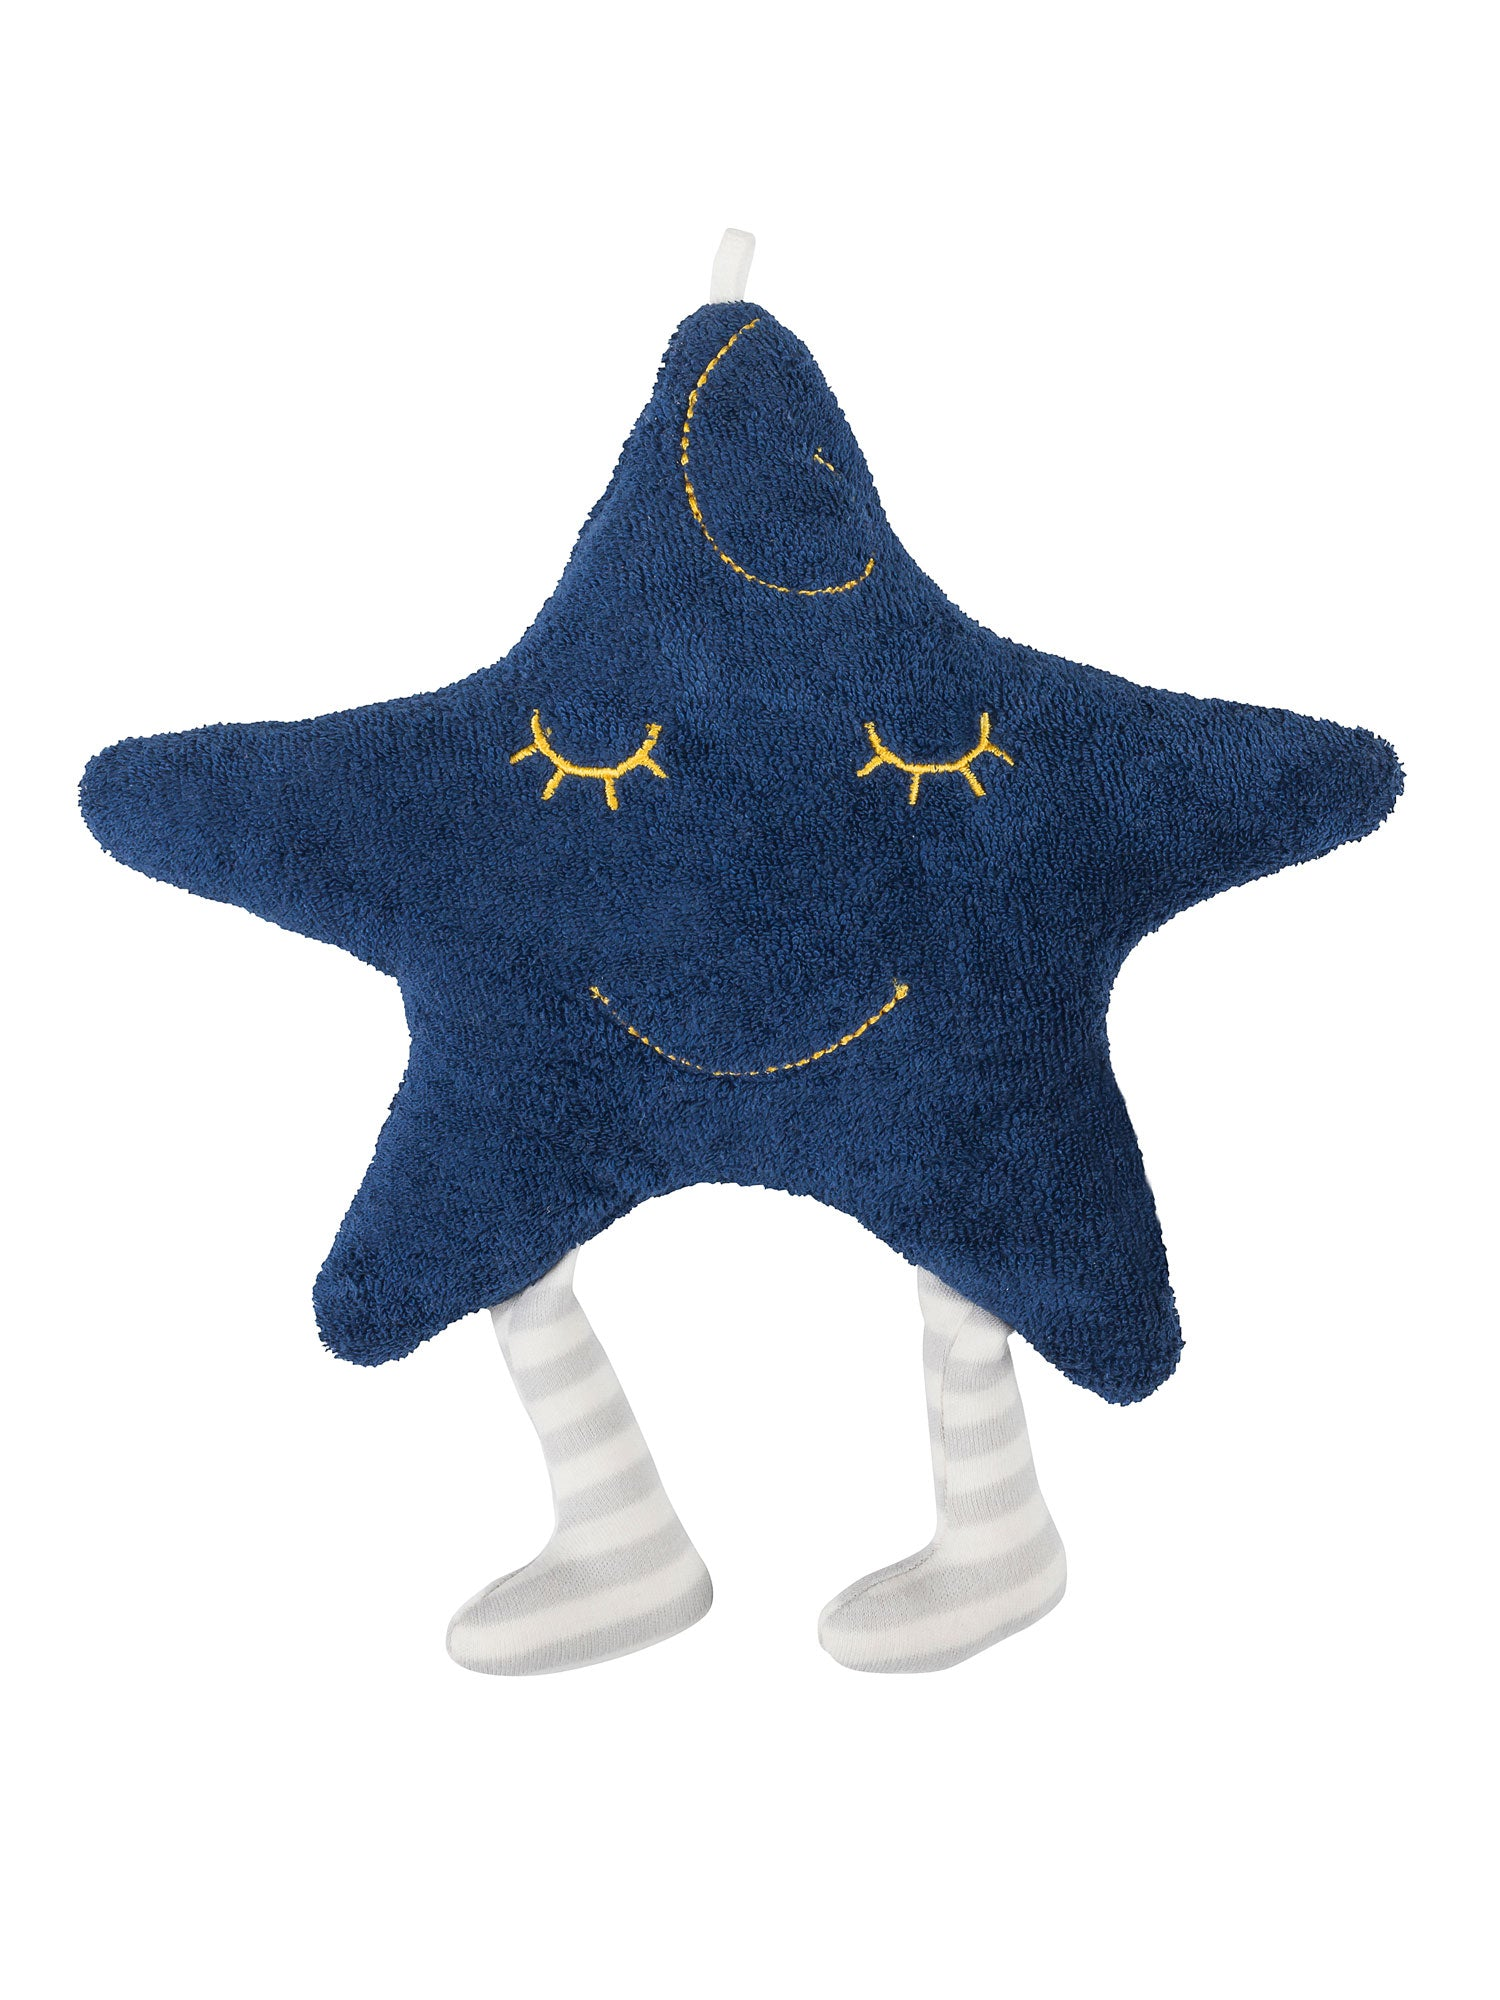 organic-cotton-baby-stuffed-star-plush-toy